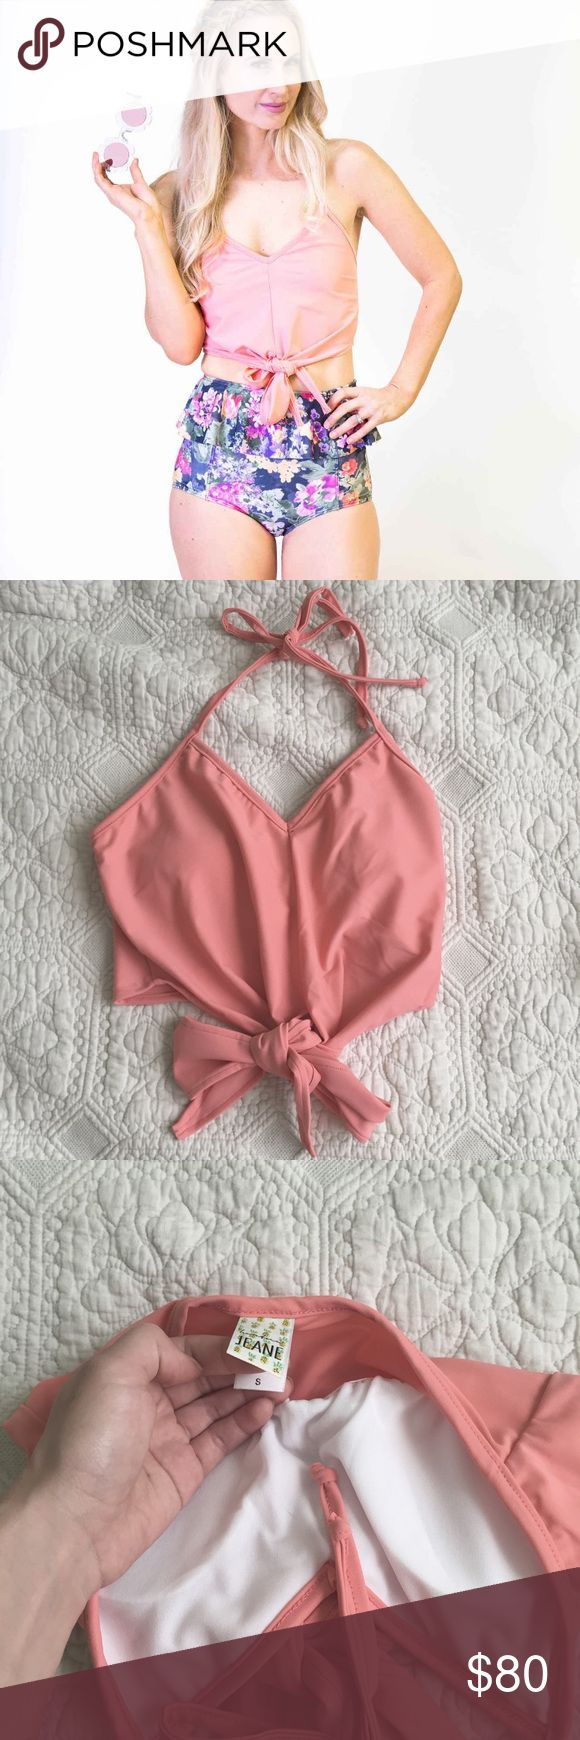 Kortni jeane tied up top bikini swim swimmers pink Tie up top style / size small / color: melon  Brand new in packaging / never worn Color is from a few seasons ago, no longer sold online    free people American eagle apparel anthropologie H&M topshop forever 21 Asos pacsun urban outfitters topshop bathingsuit bikini retro high rise midori acacia triangl Victoria's Secret victorias Victoria pink vs lululemon lulu Nike Victoria's Secret adidas Apple iPhone Louis pin up high cut hi nylon…